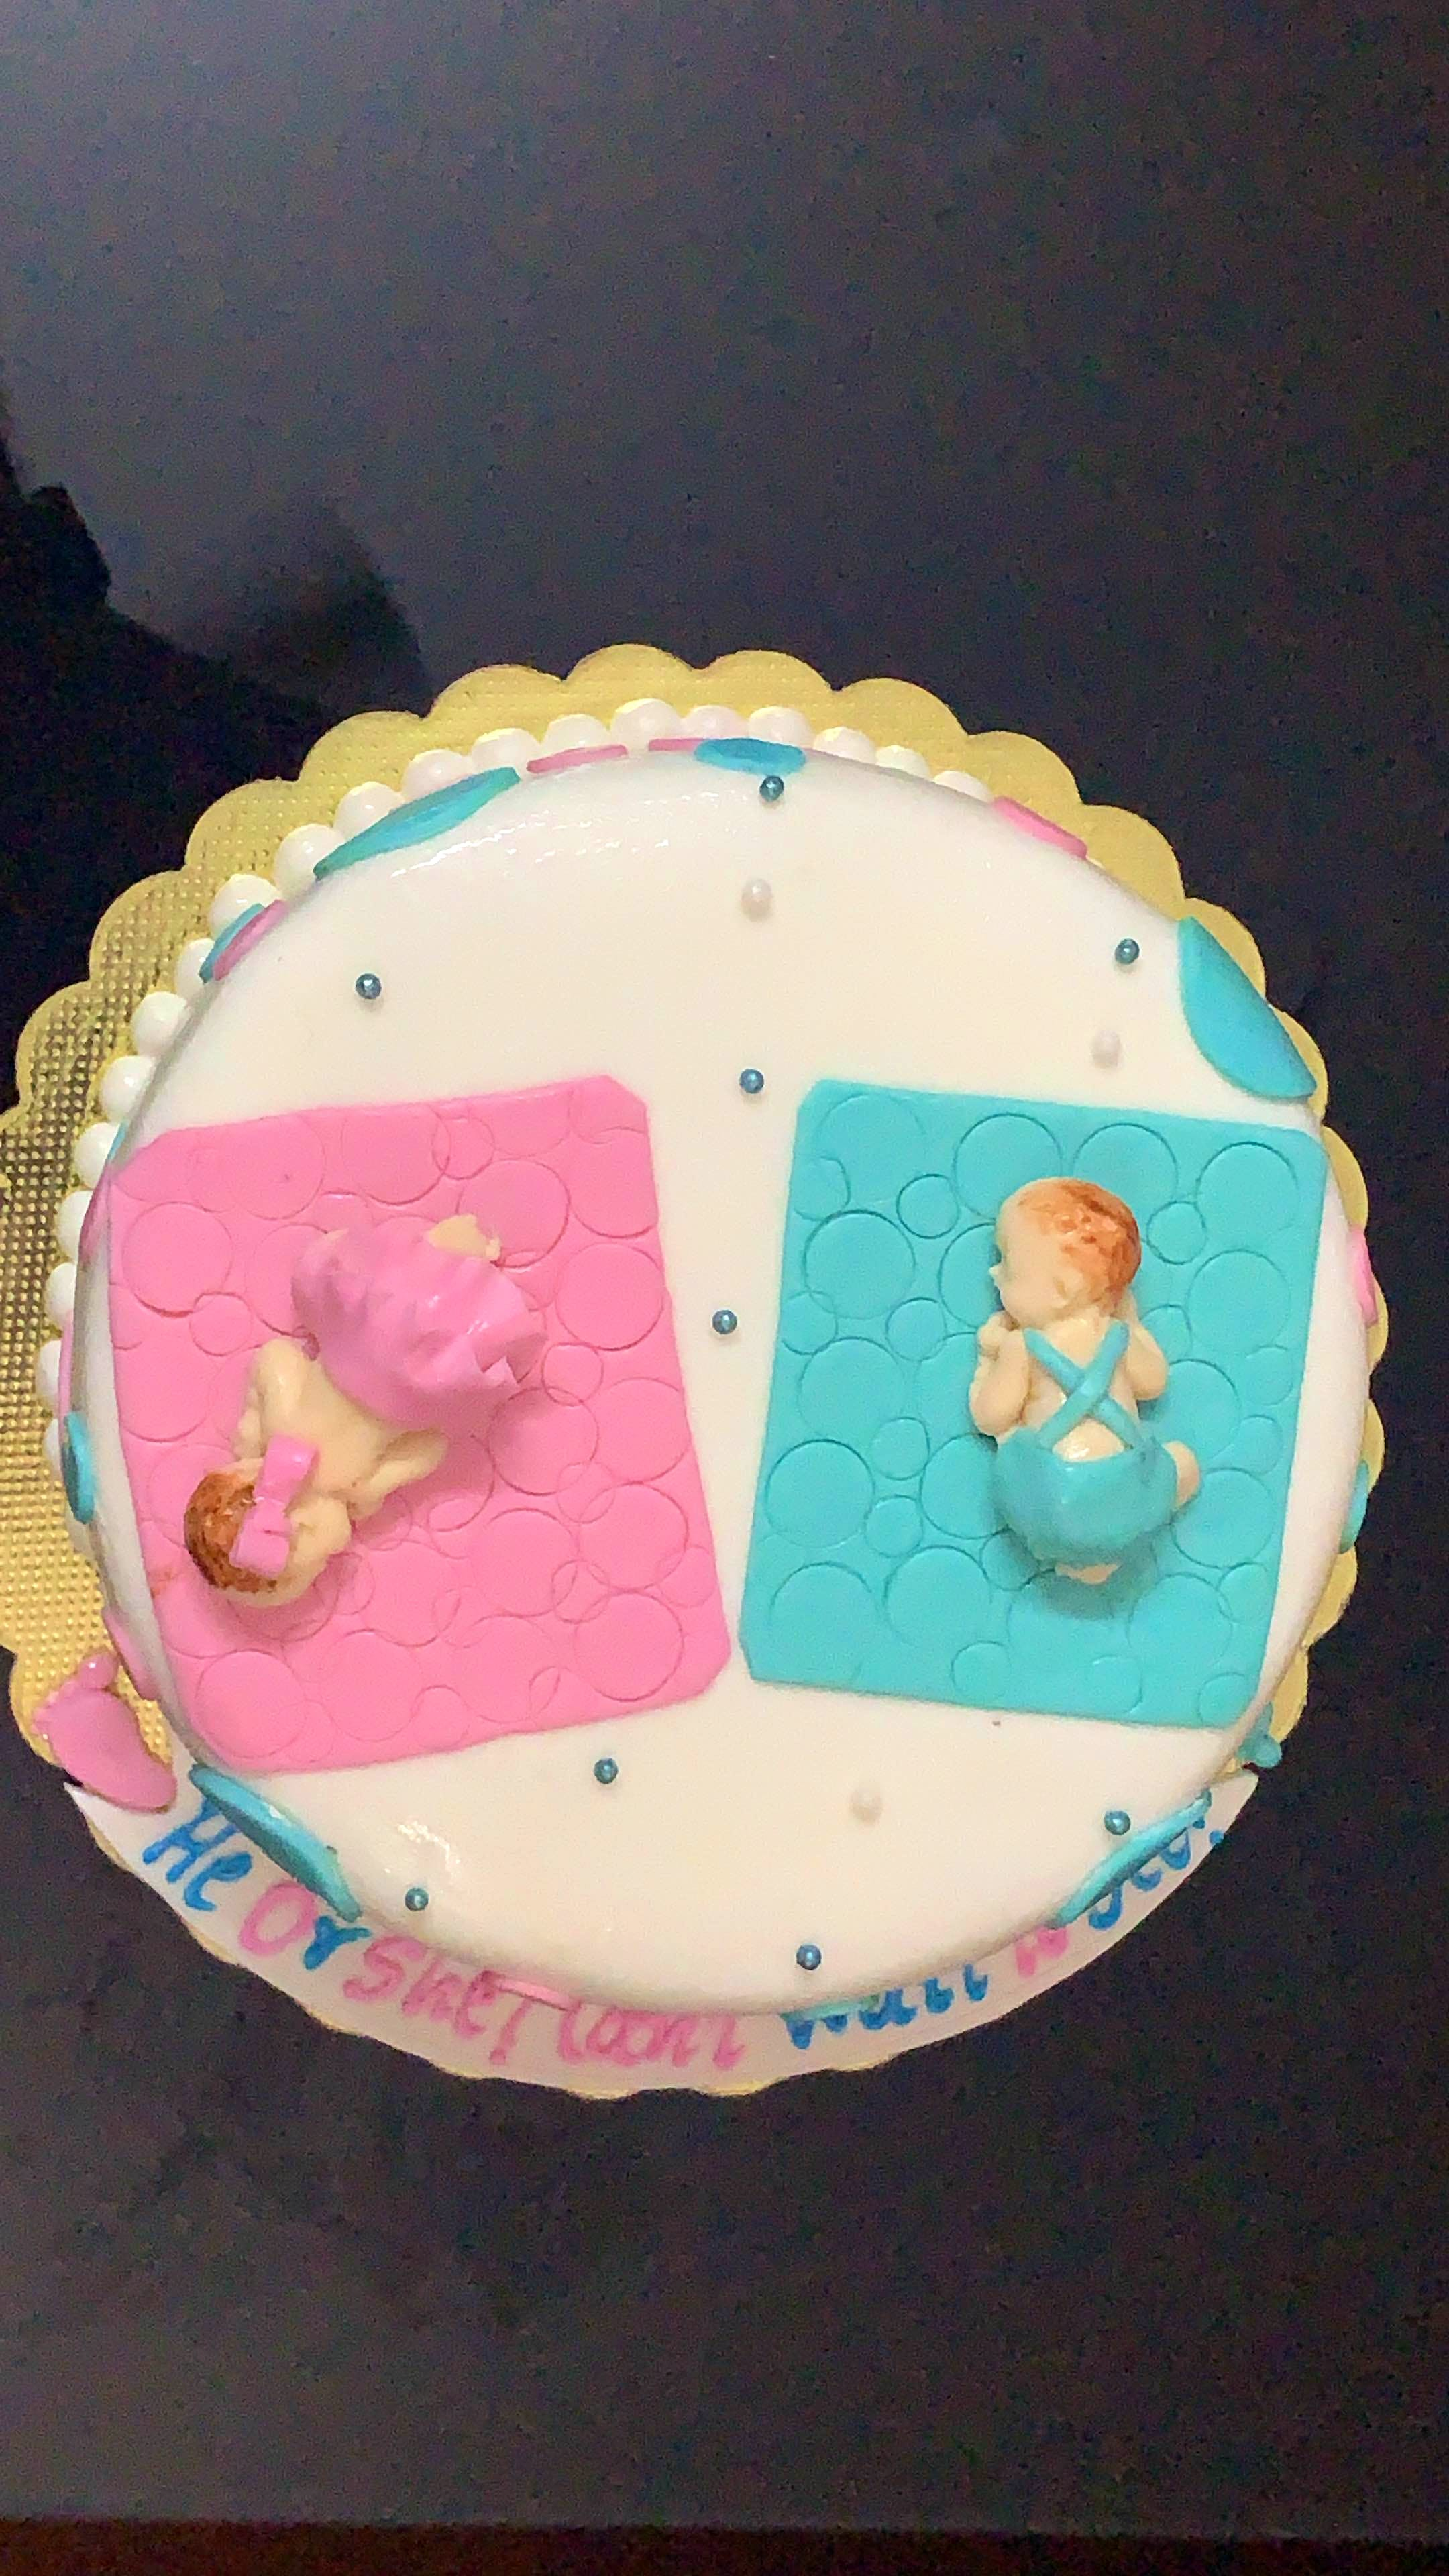 Customized Your Cakes At This Cake Shop In Murgesh Pallya